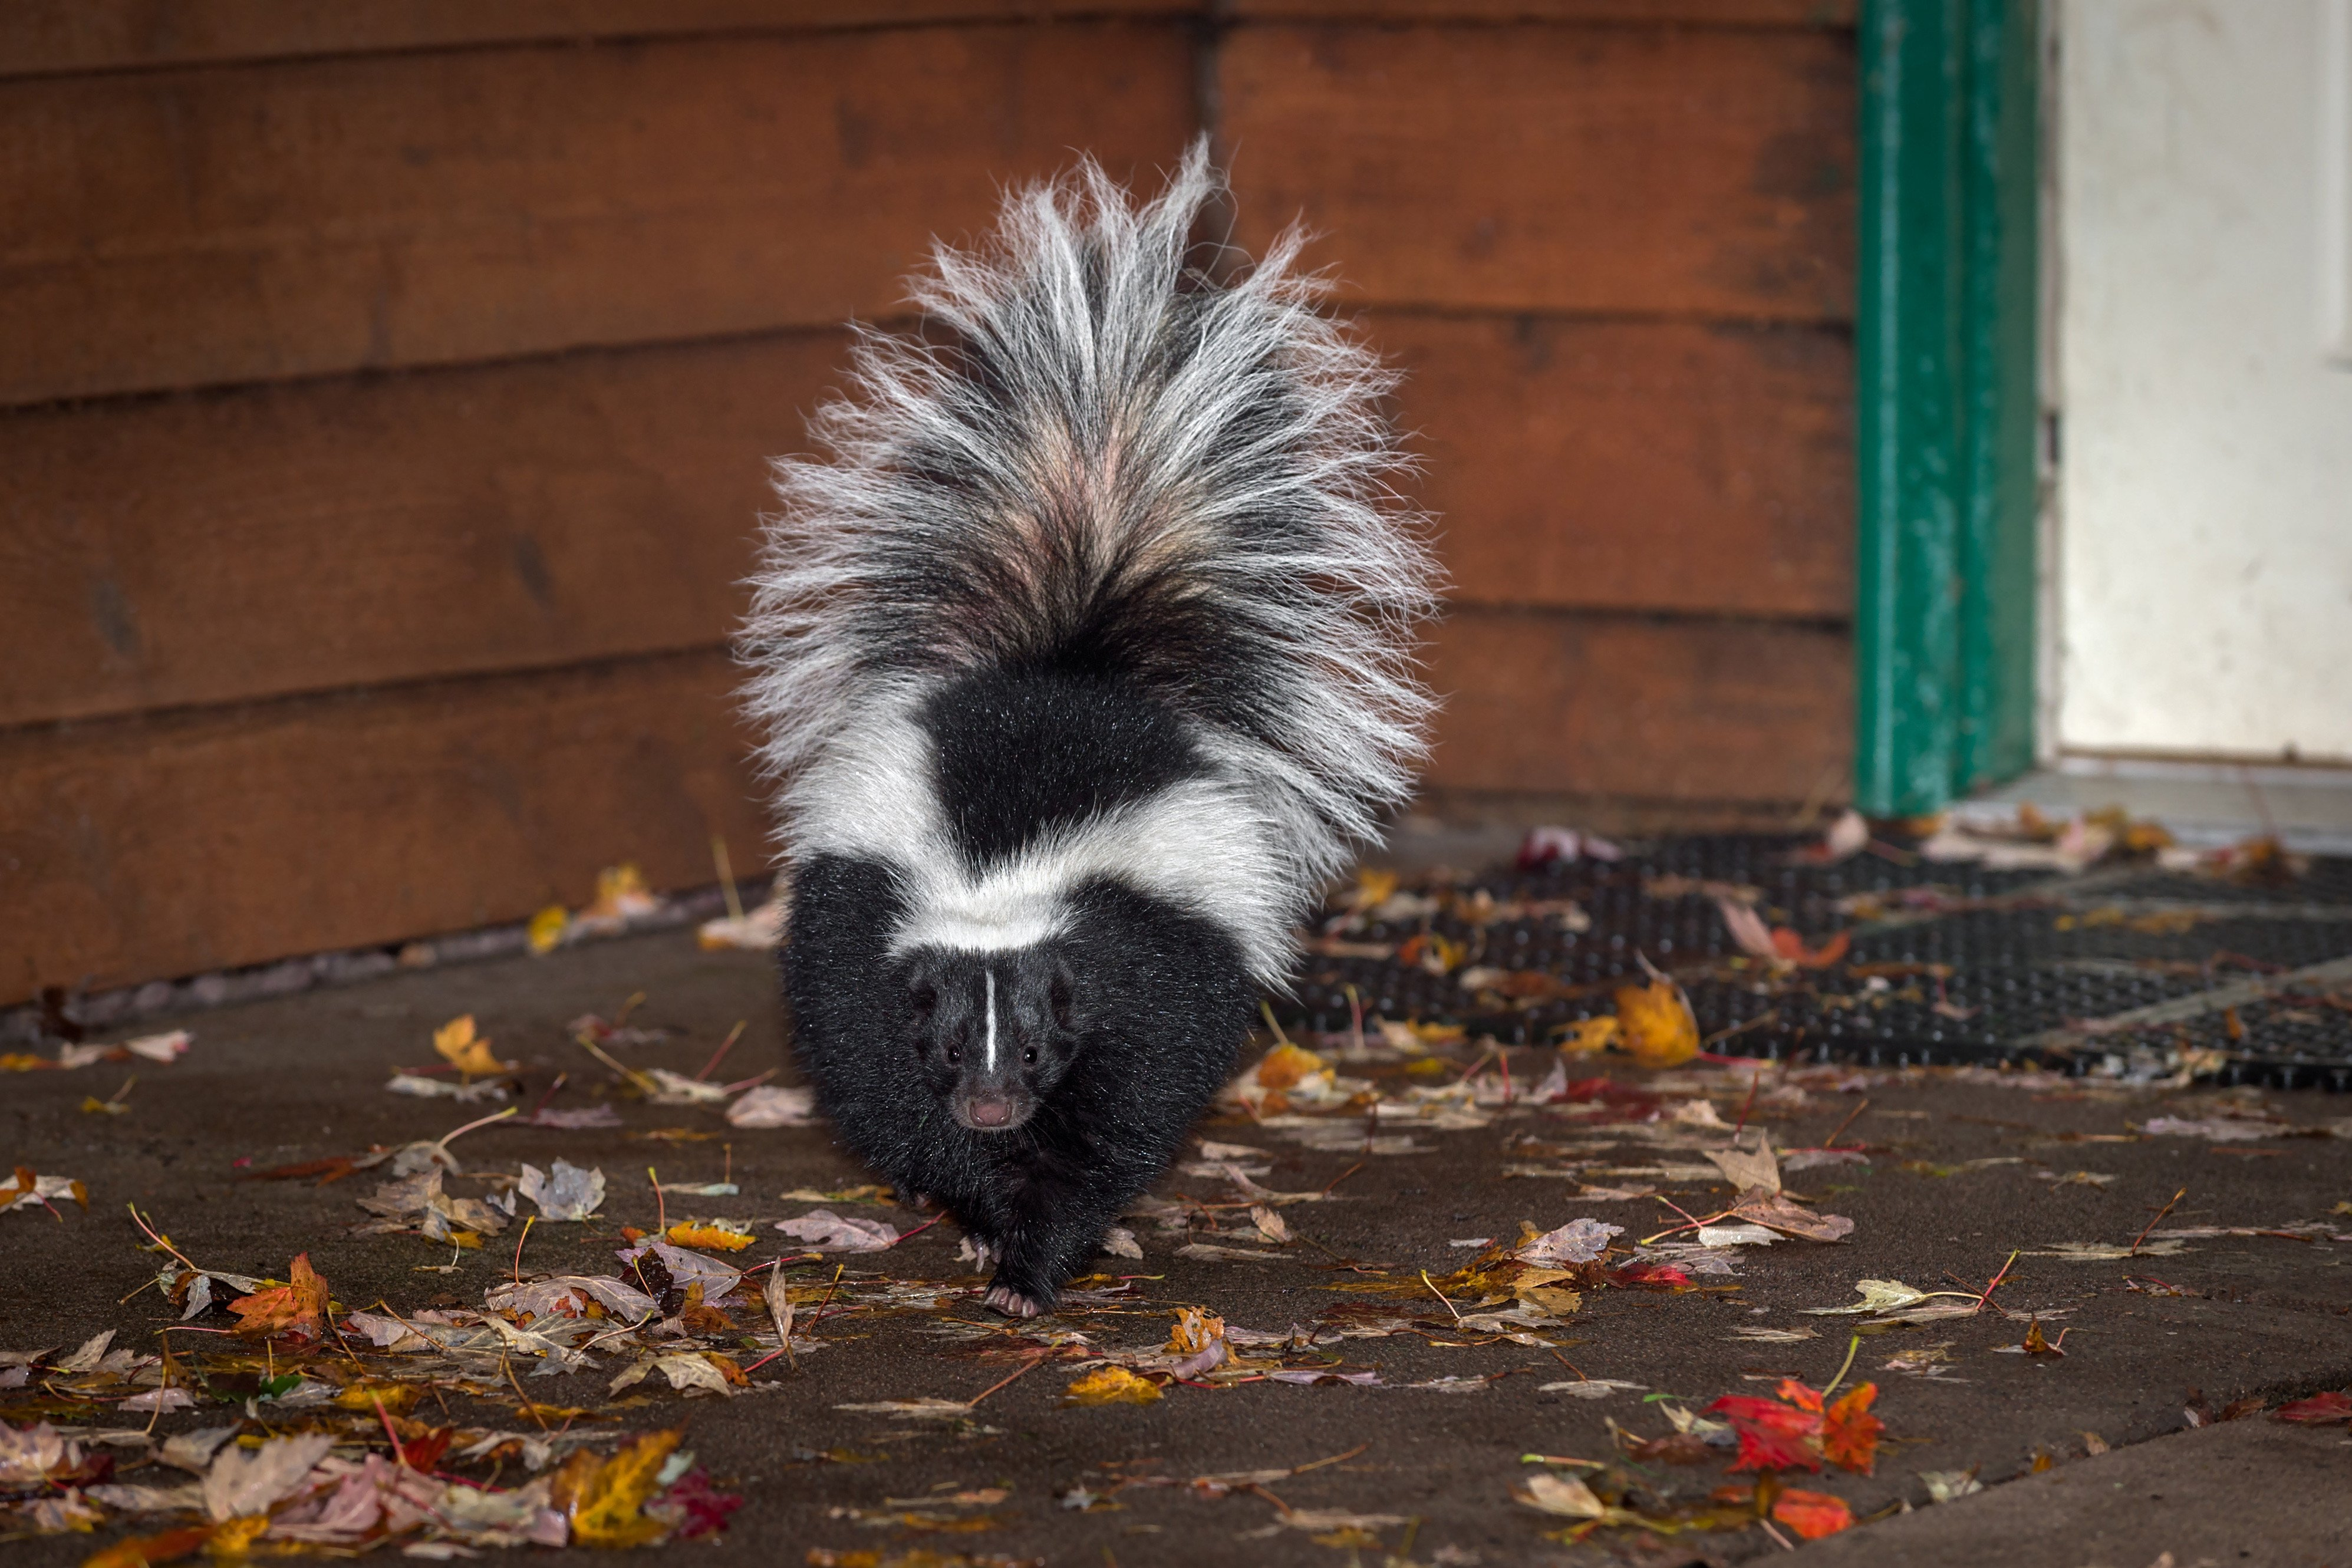 Man burns down home trying to get rid of skunks